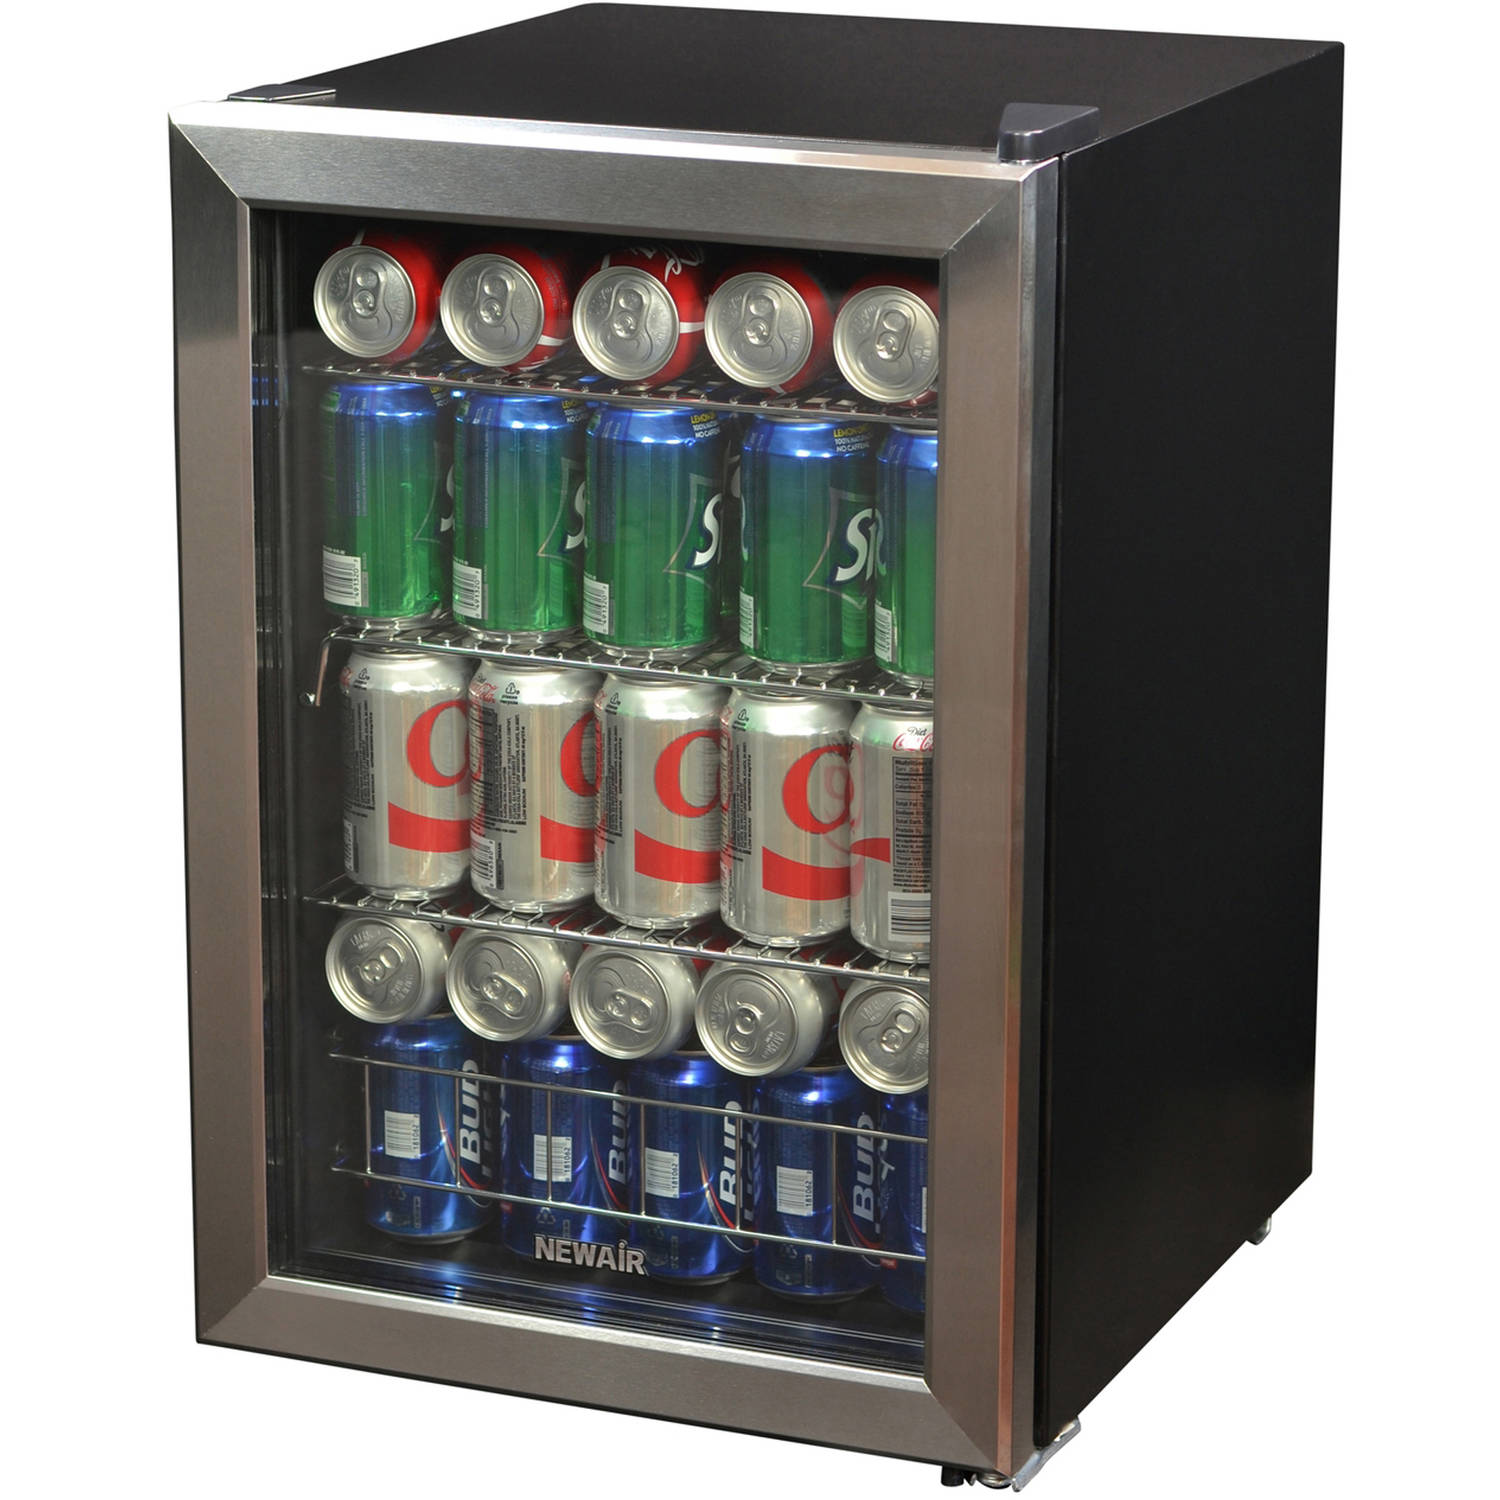 NewAir 84-Can Stainless Steel Beverage Refrigerator